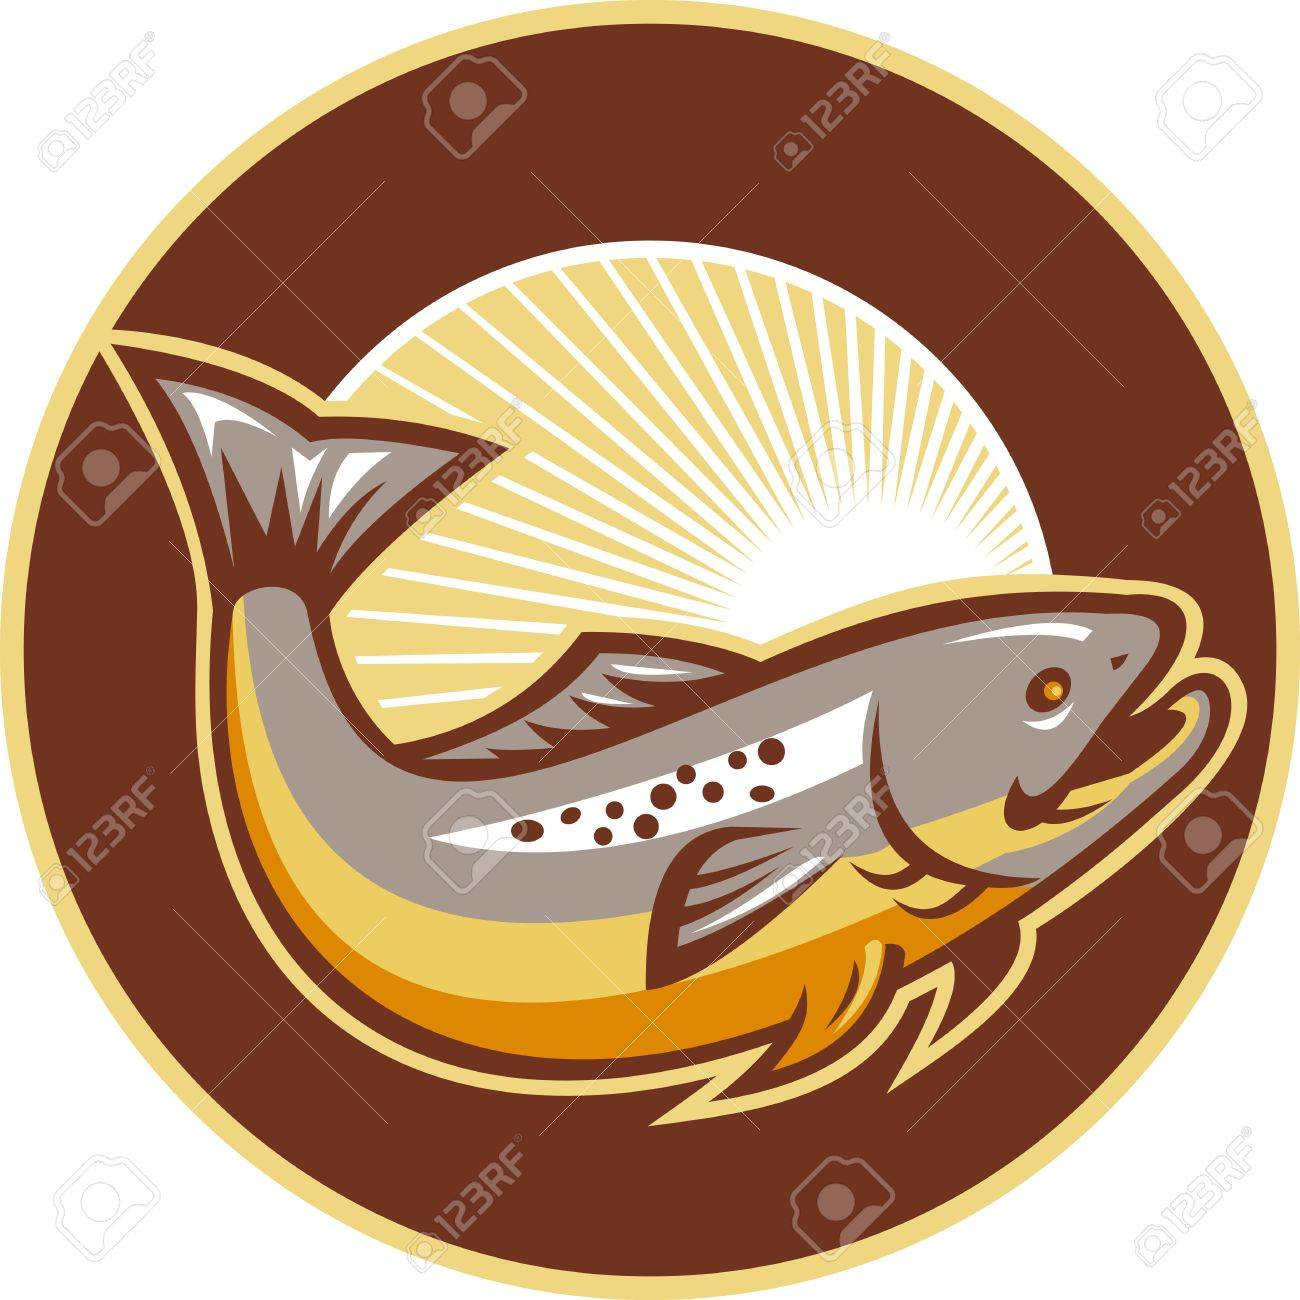 Freshwater fish jumping - Illustration Of A Trout Fish Jumping Set Inside Circle With Sunburst In Background Done In Retro